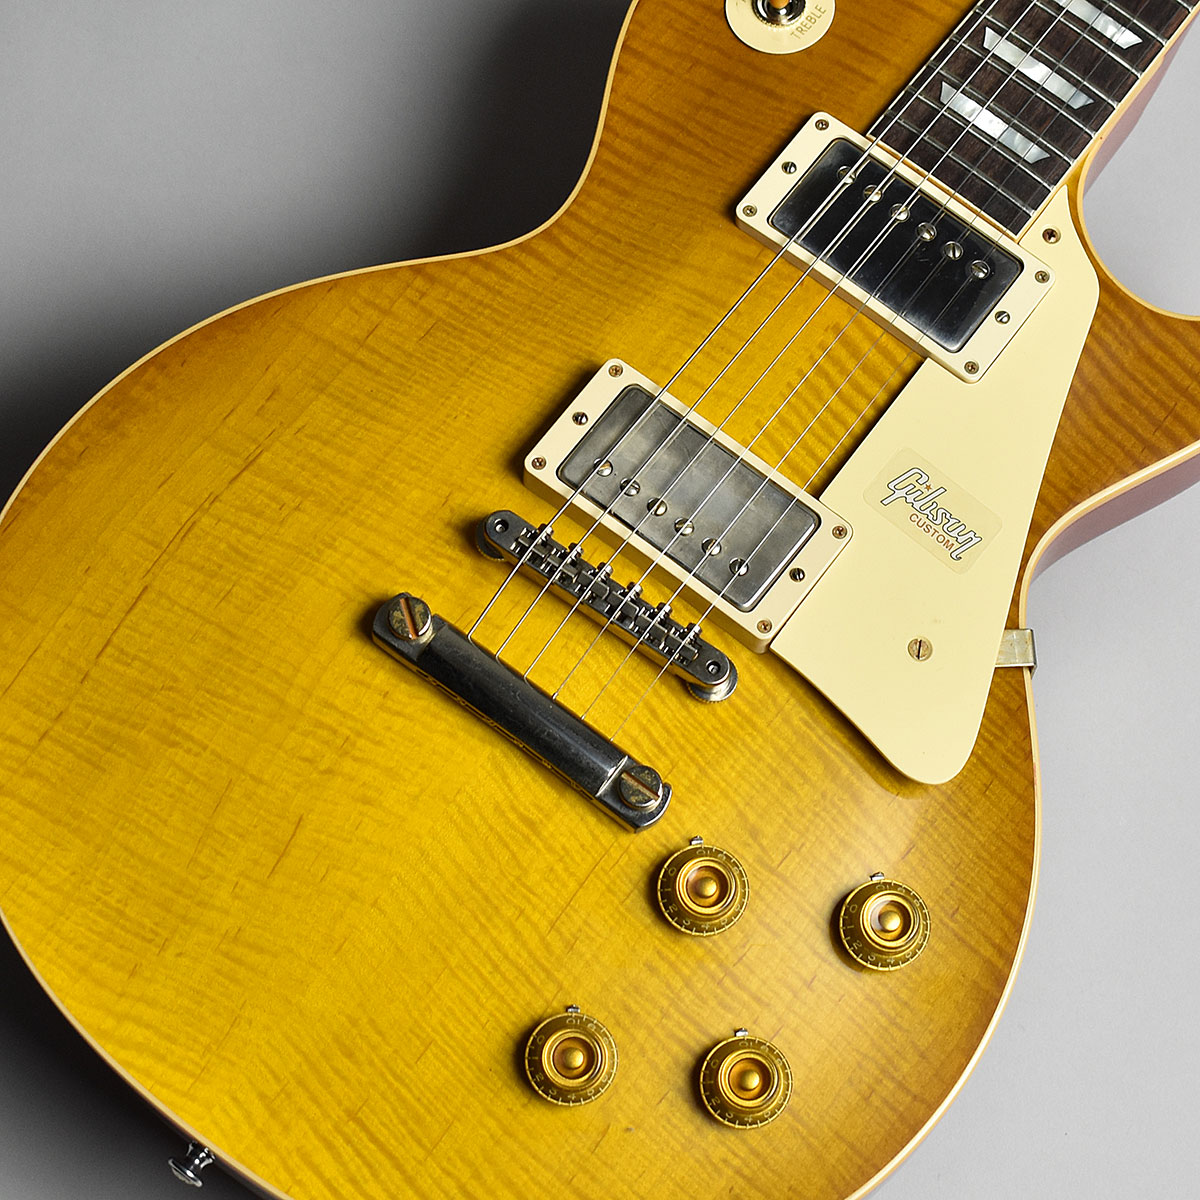 Gibson Custom Shop 1959 Les Paul Standard Honey Lemon Fade VOS S/N:982861 【2018 Historic Collection】 【ギブソン カスタムショップ】【未展示品】